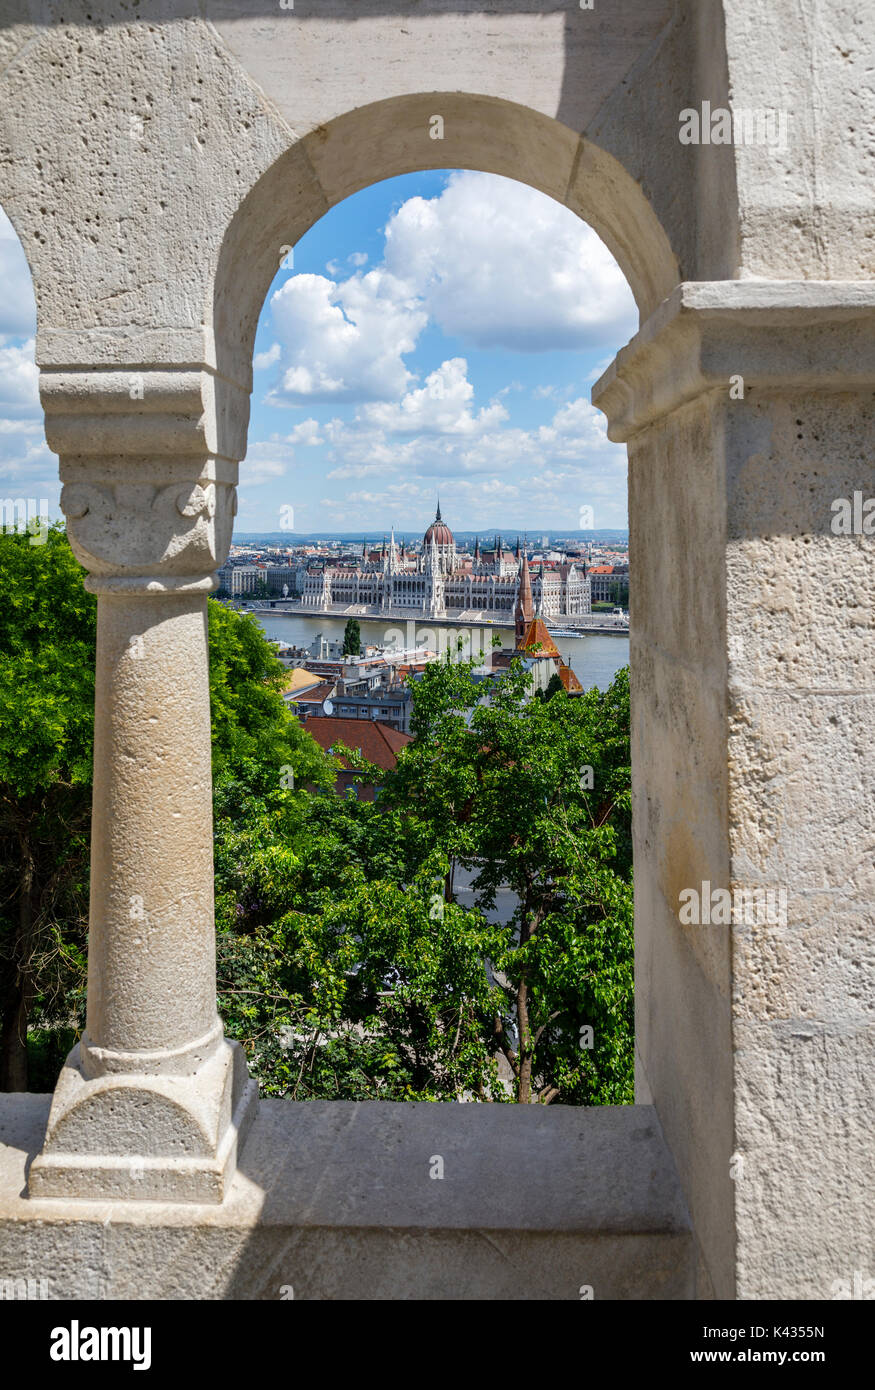 View of the Hungarian Parliament Building in Pest from the Fisherman's Bastion, Castle District, Buda, Budapest, capital of Hungary, central Europe - Stock Image